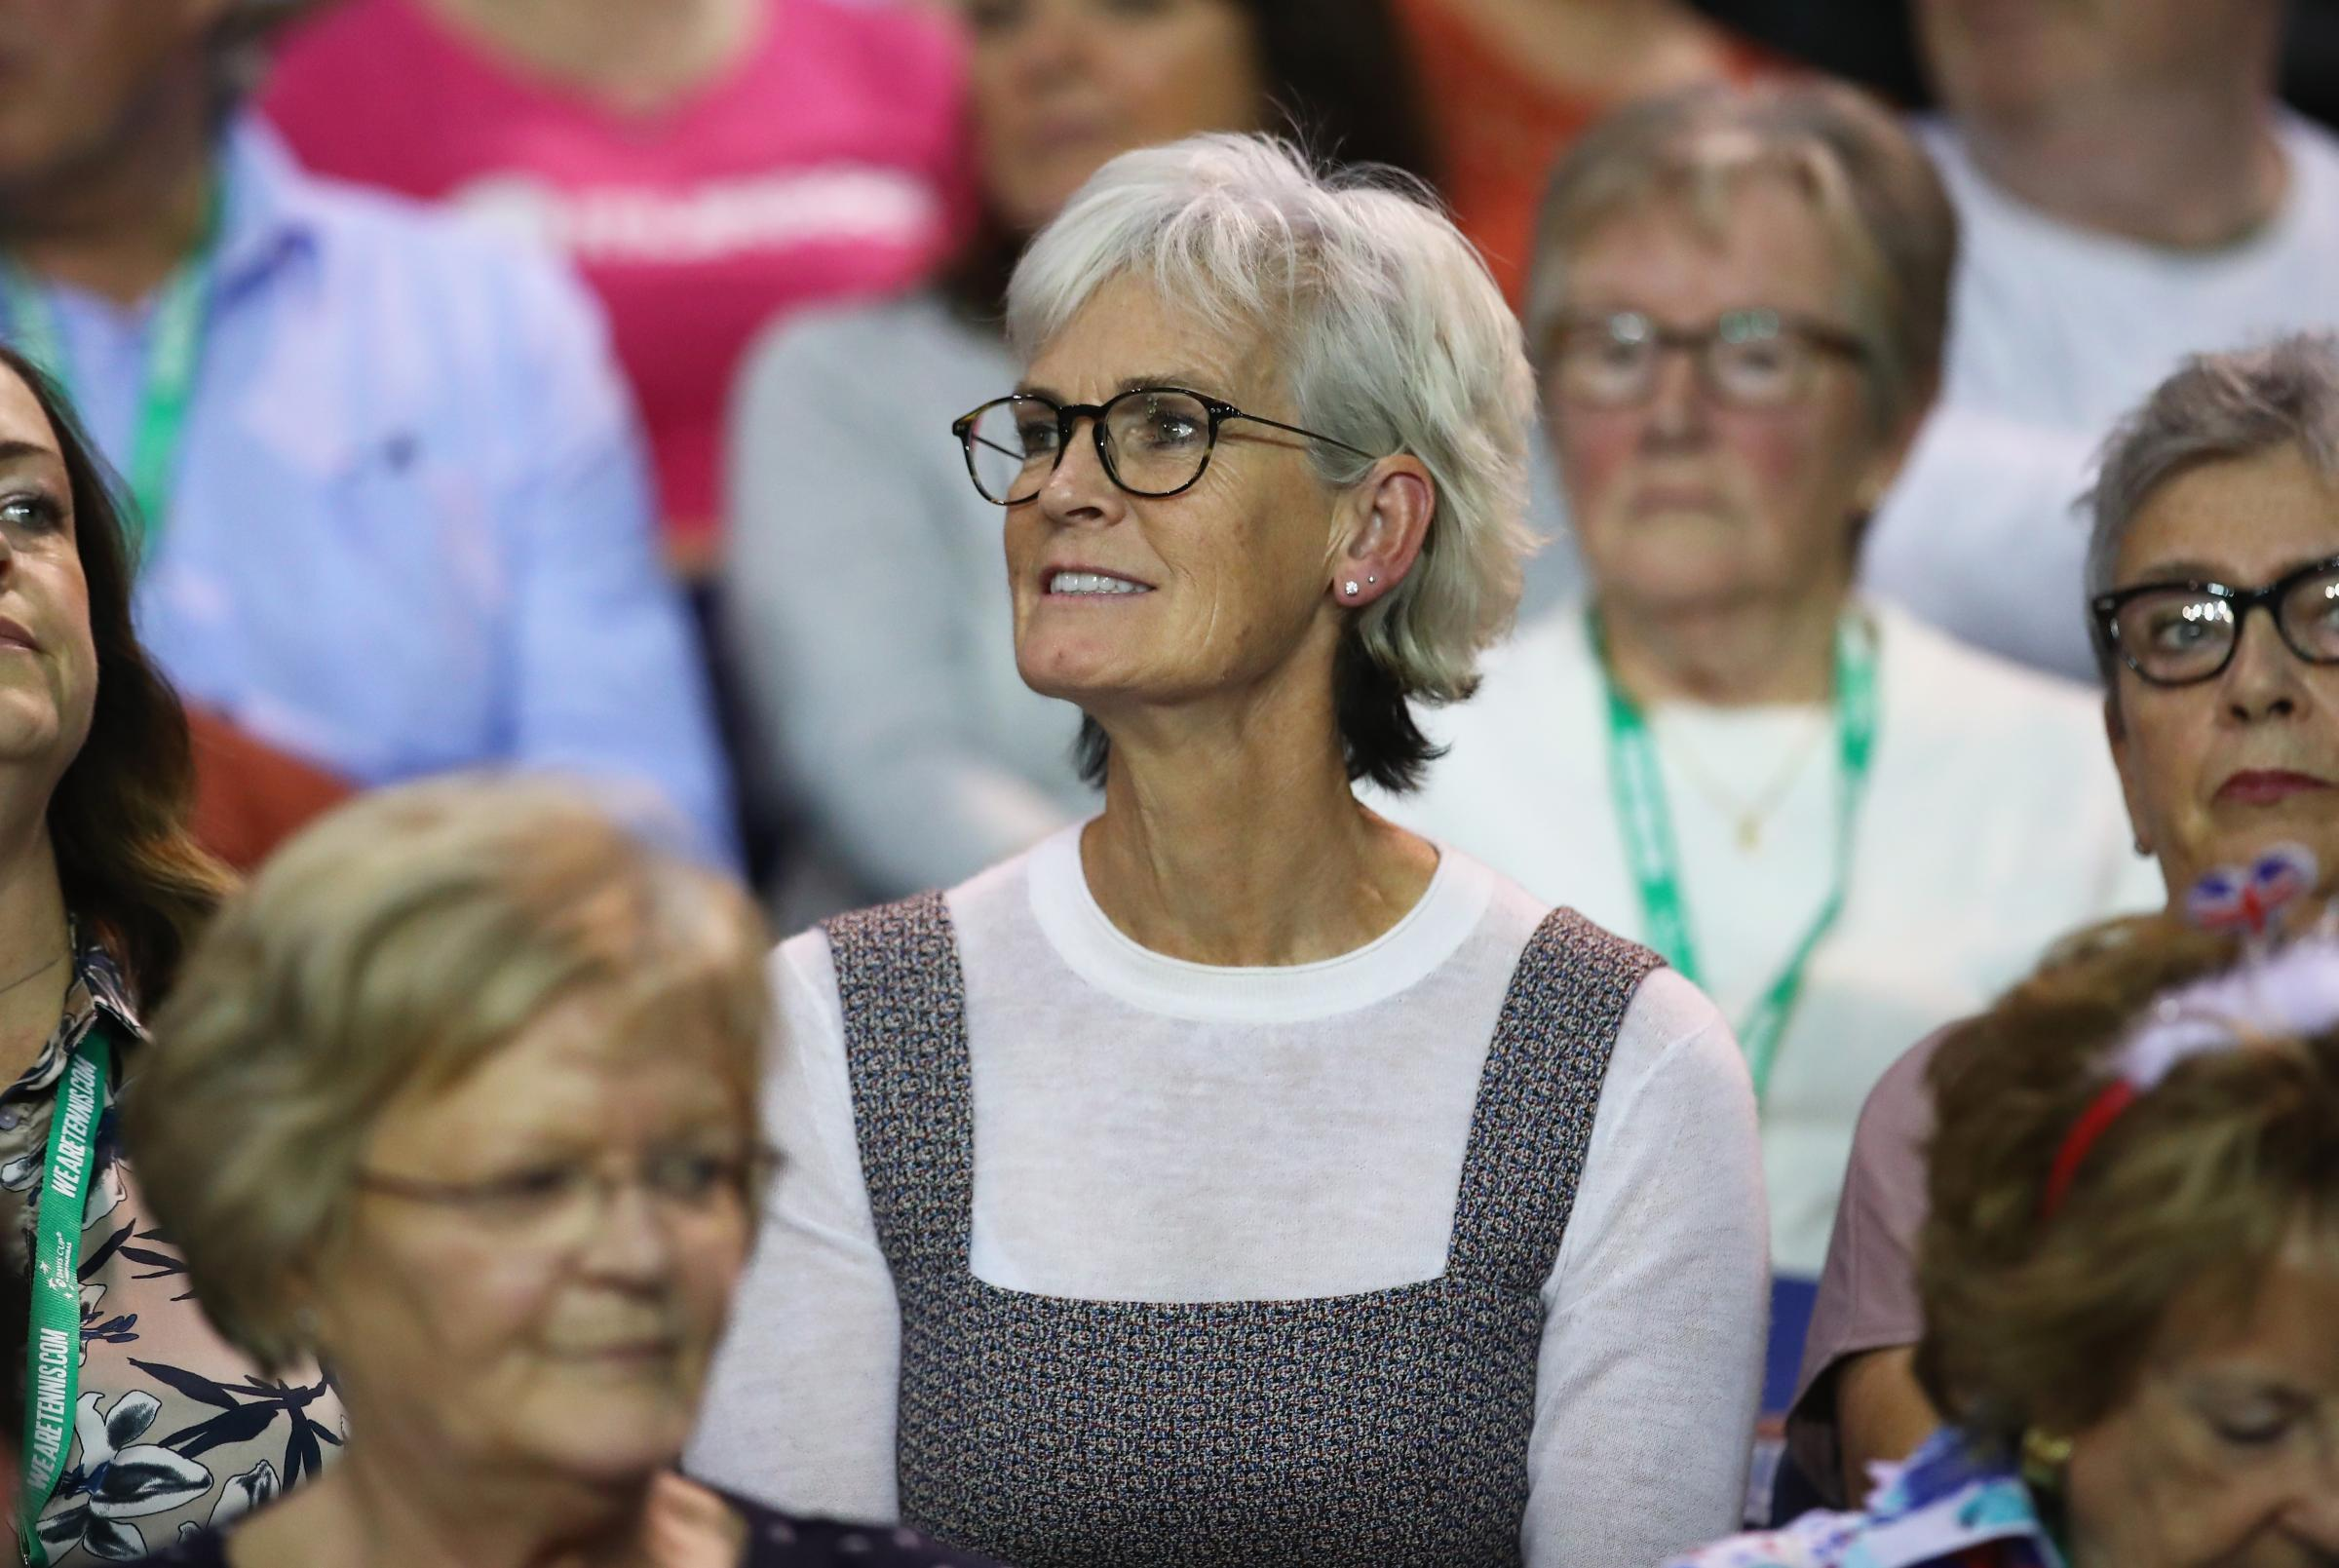 Judy Murray shows her emotions after watching her son Jamie Murray and his doubles partner Dominic Inglot of Great Britain just after they had celebrated match point against Denis Istomin and Sanjar Fayziev of Uzbekistan. Picture: Getty